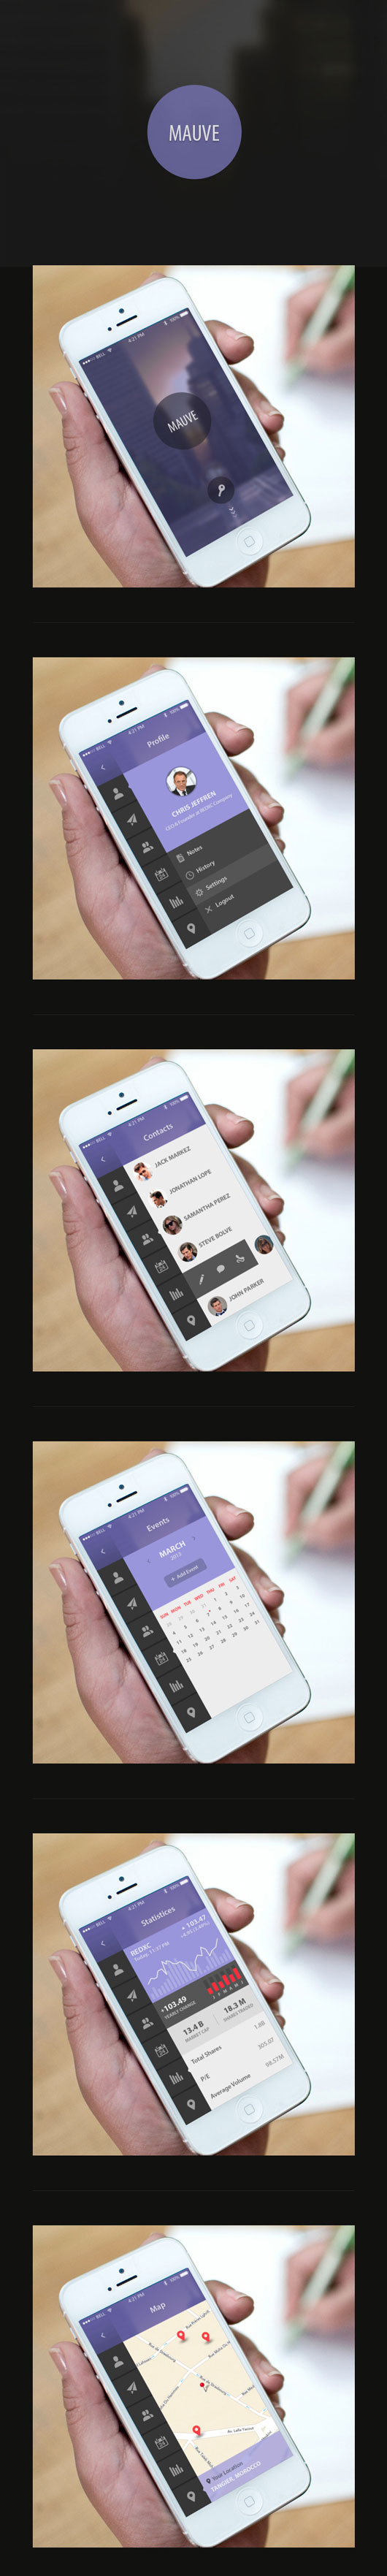 Flat Mobile UI Designs